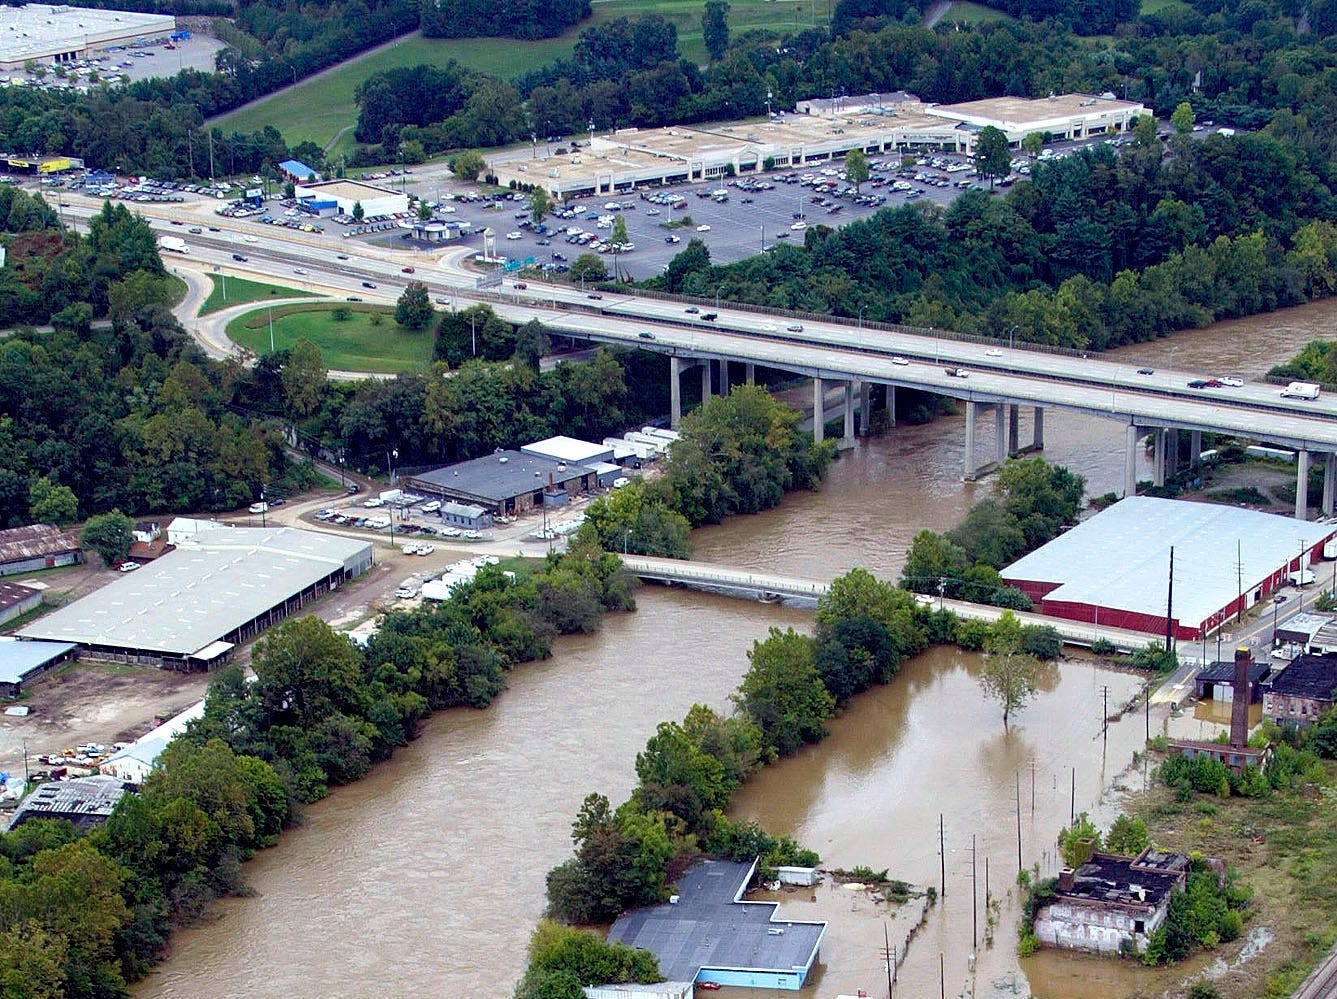 Businesses along the French Broad River in Asheville, N.C., are shown under water Thursday, Sept. 9, 2004, after the remnants of Hurricane Frances brought heavy rains and flooding to the area.